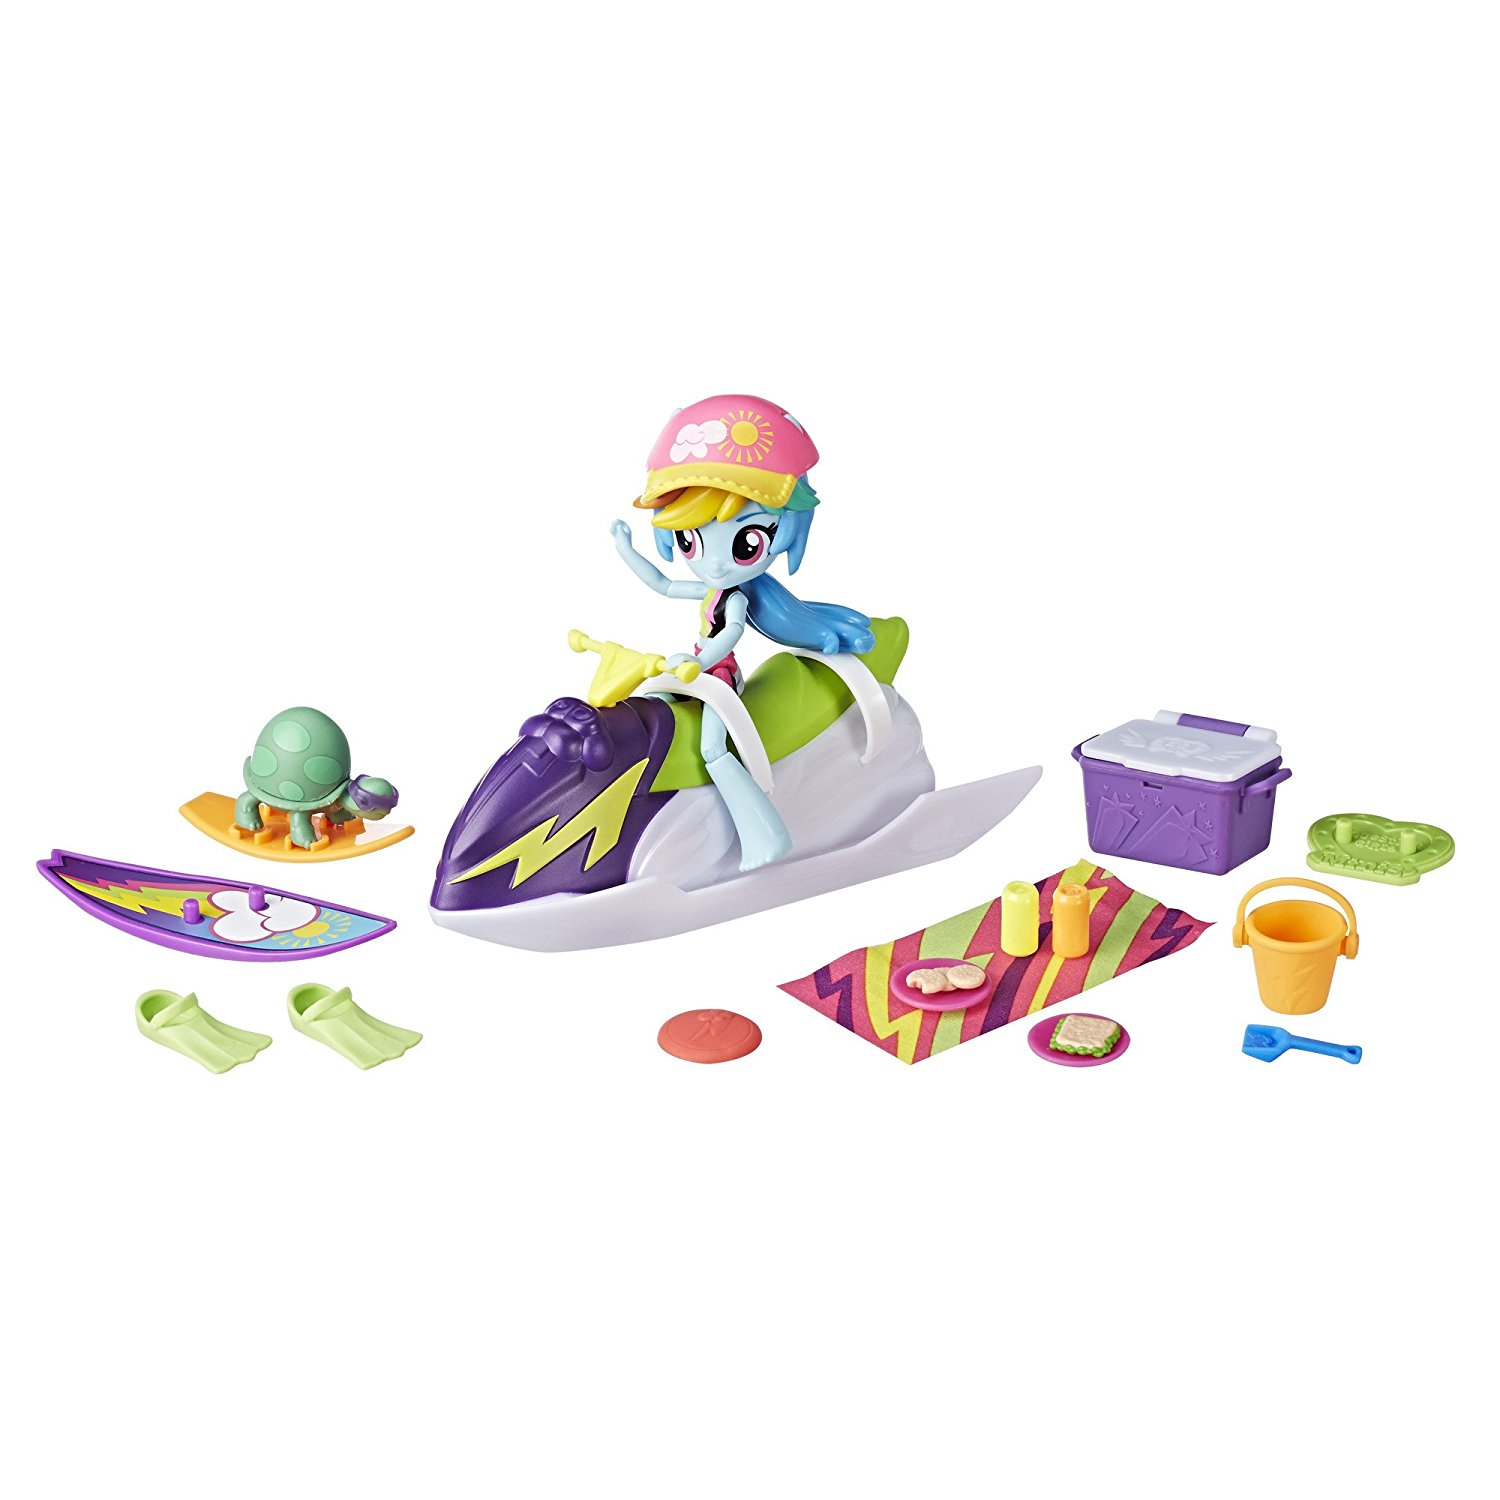 Image Result For Beach Accessories For